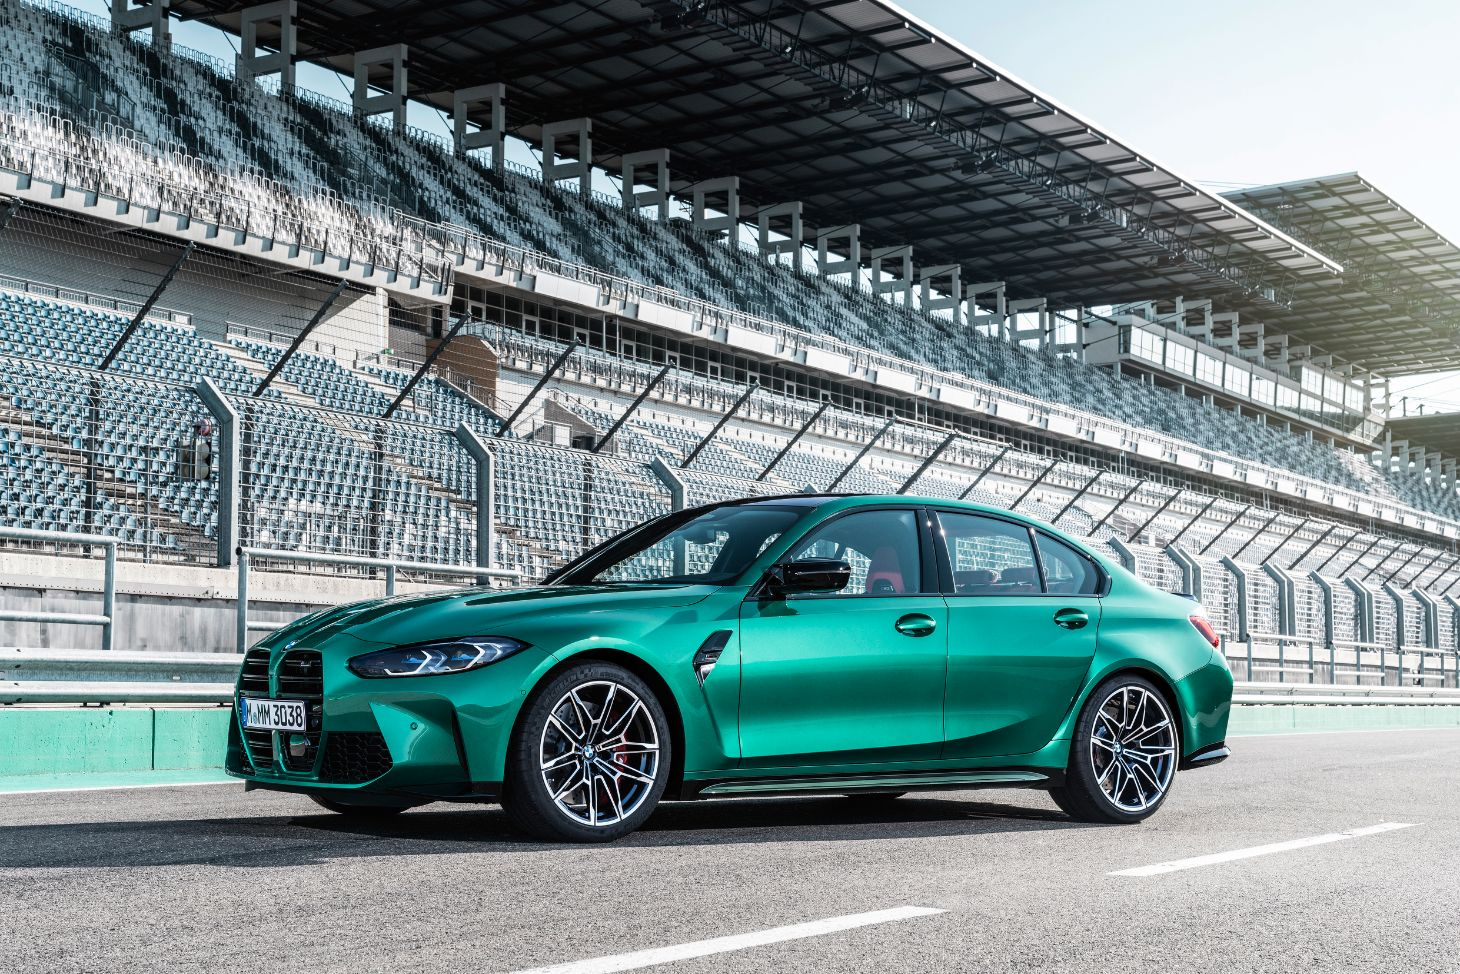 lateral do bmw m3 sedan verde